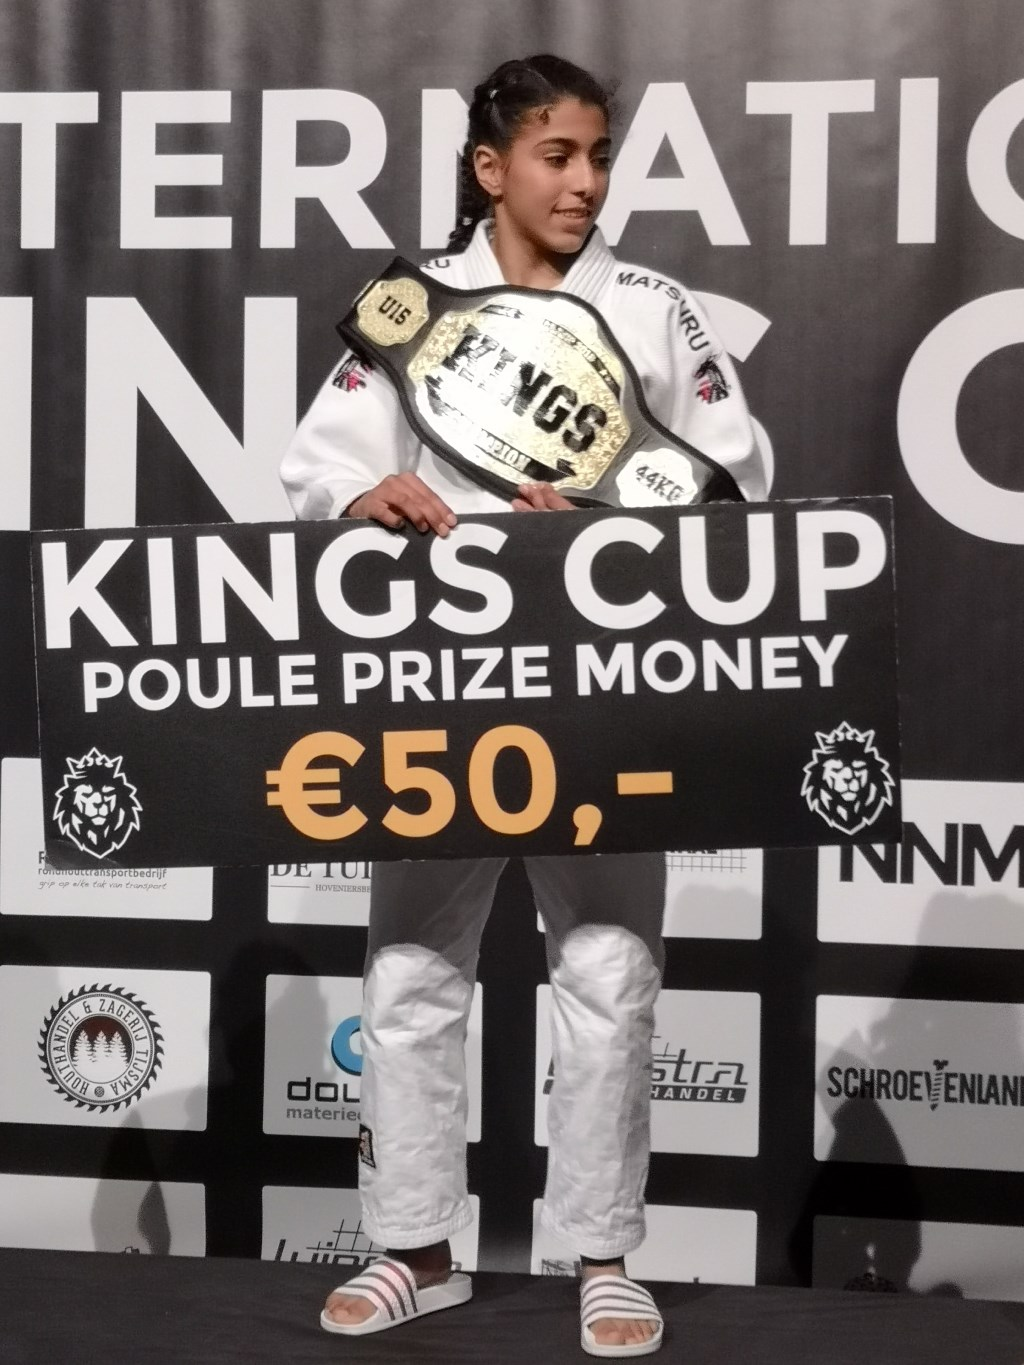 Nohade Riadi met Kingscup championship belt. Foto: Martin Evenberg